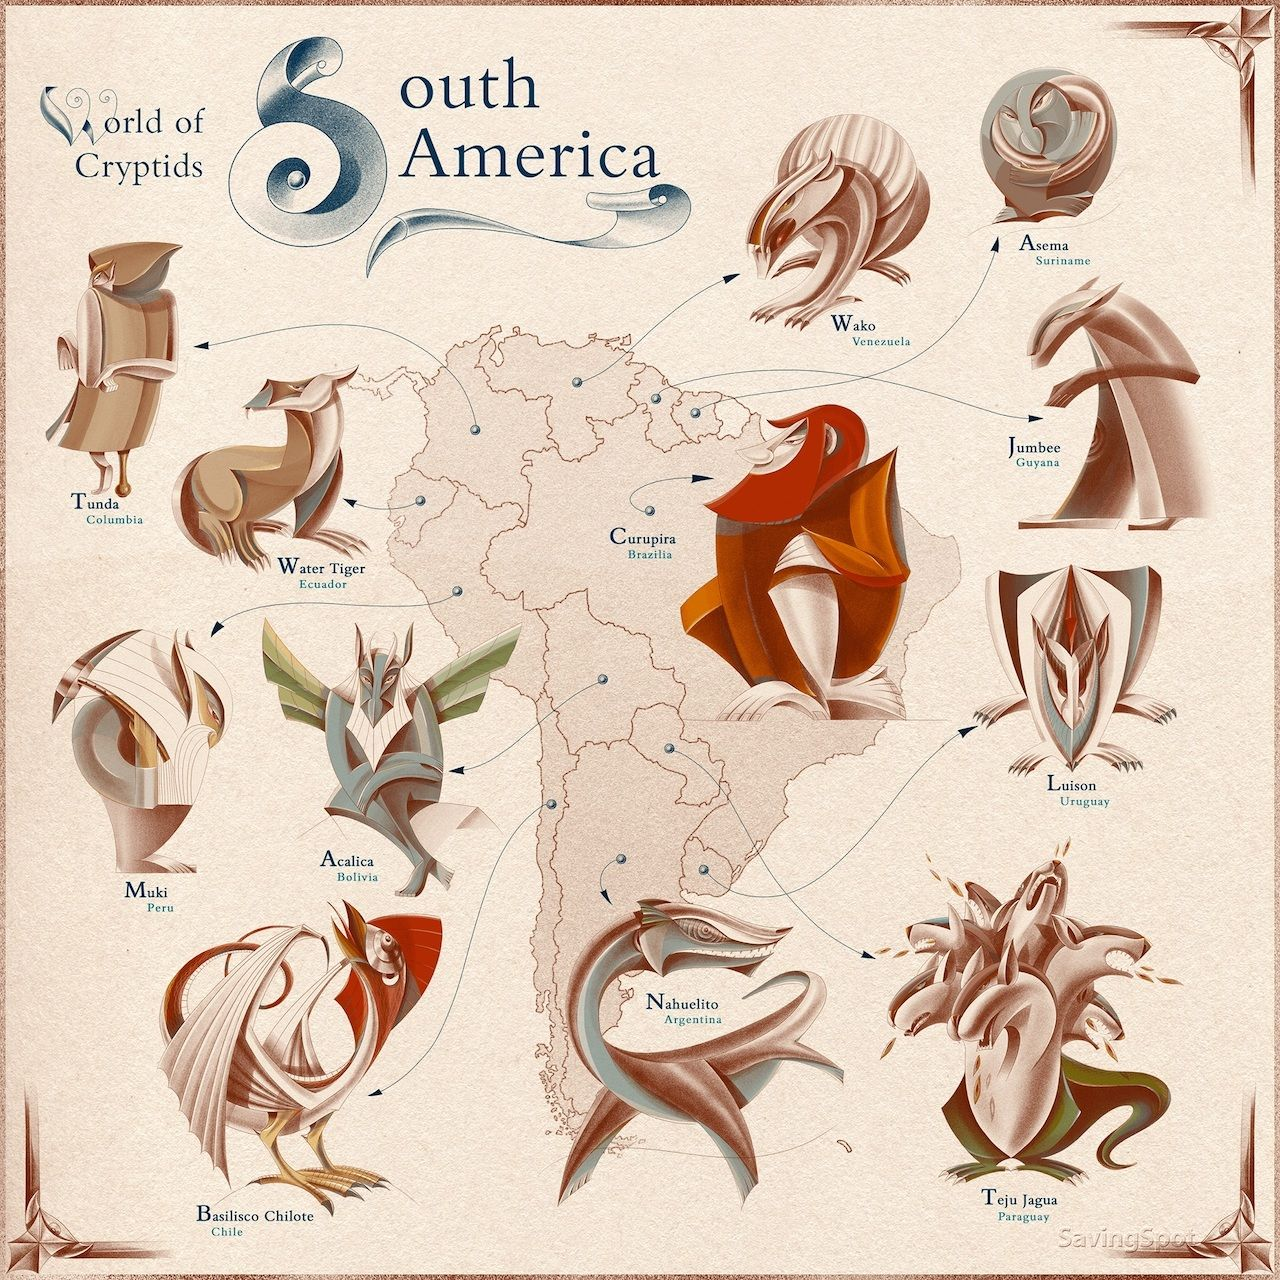 Mythical Creatures in South America